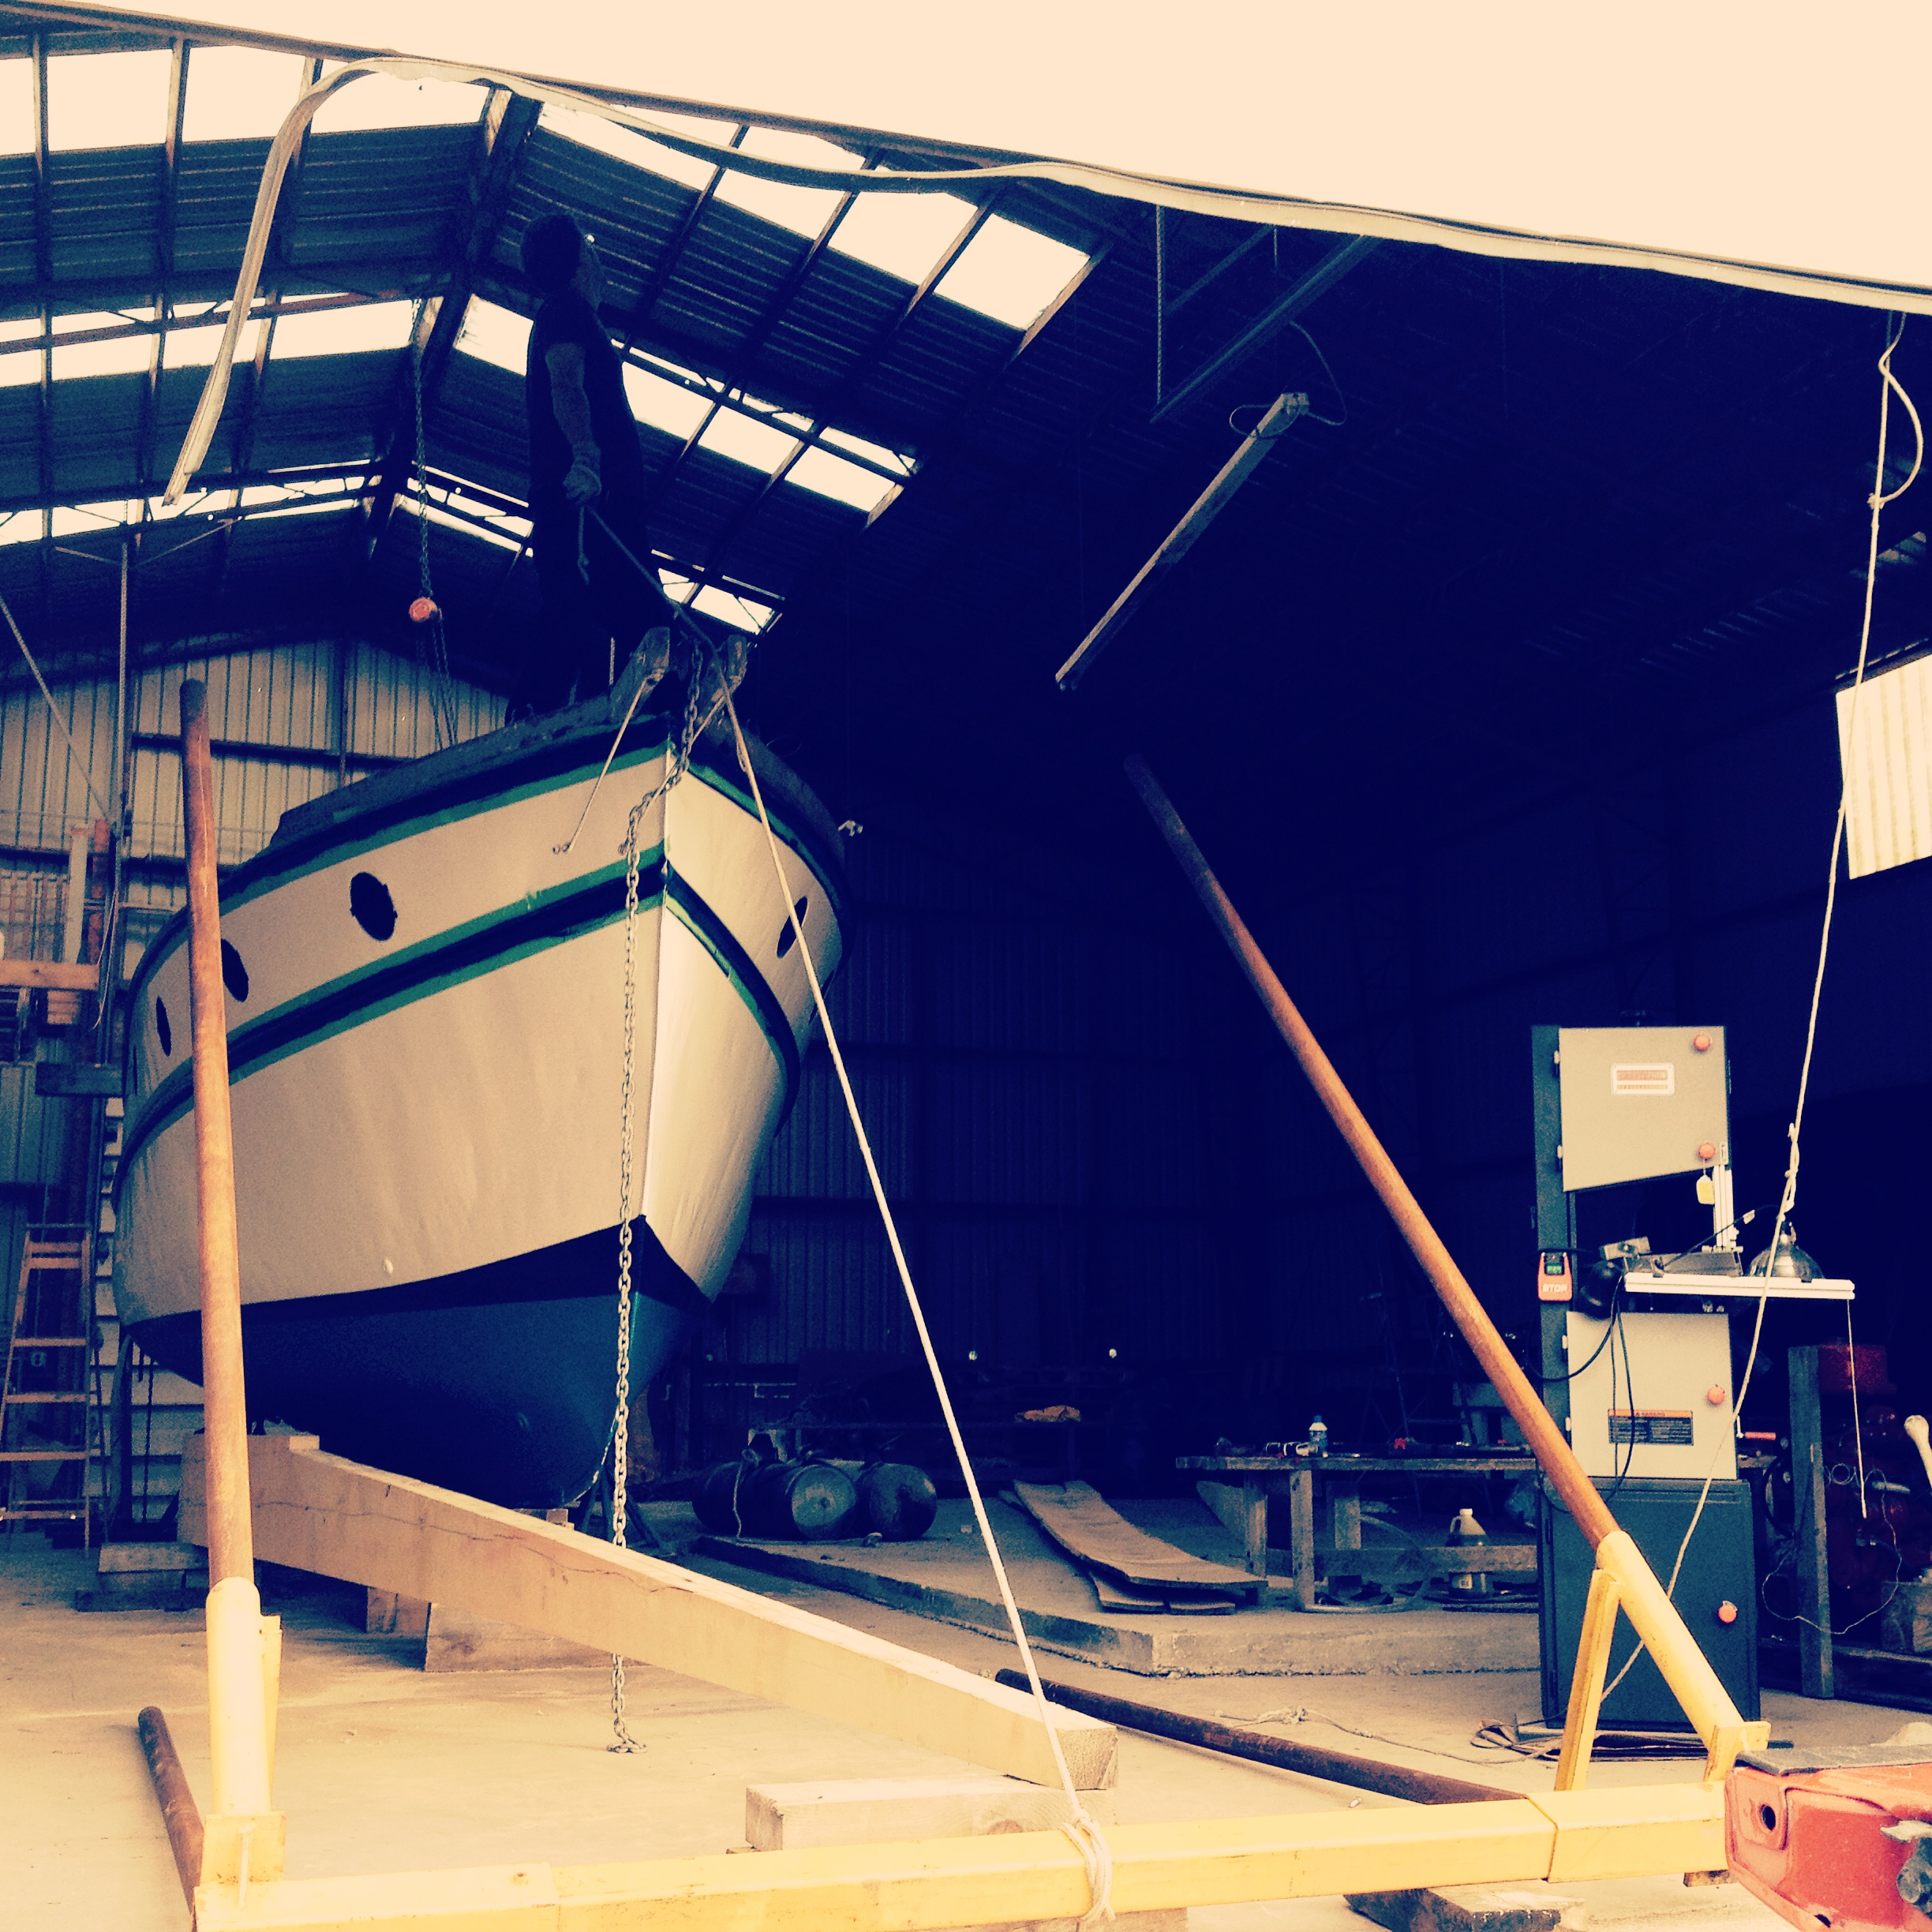 In the shop, preparing to lift the hull for the new keel.